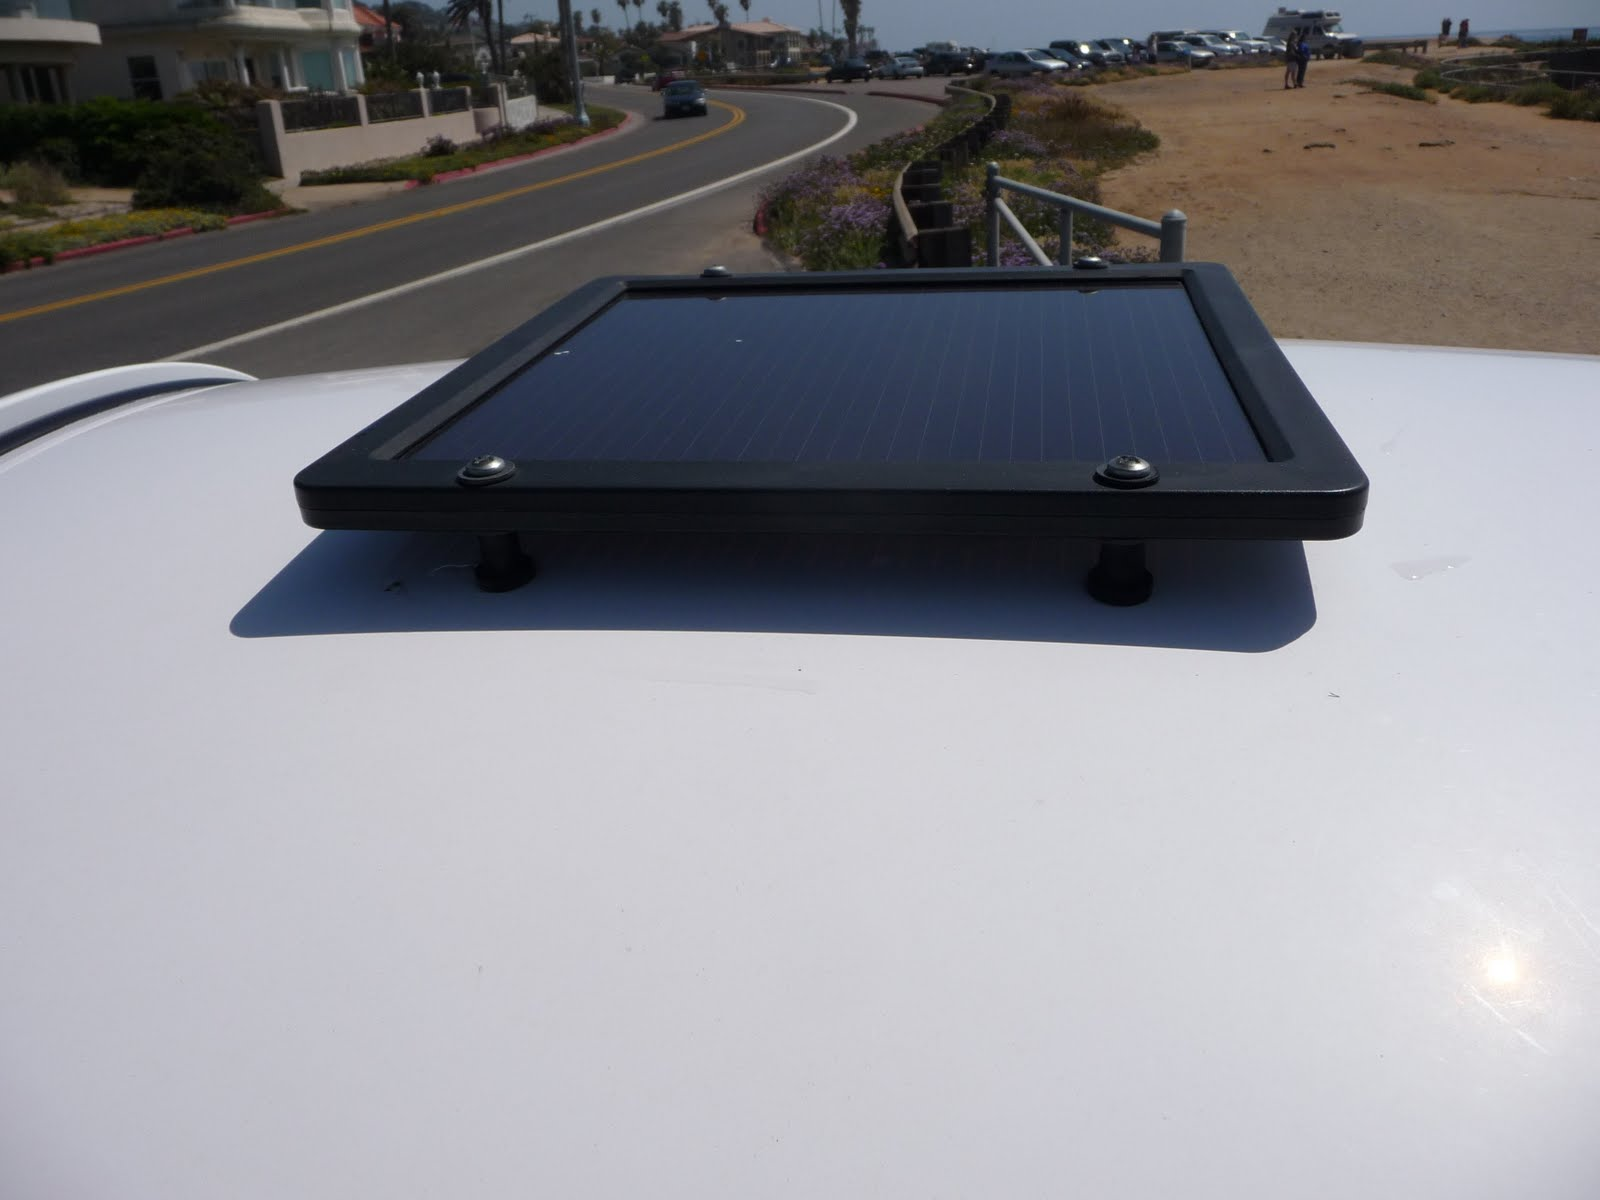 hight resolution of i added a solar panel to charge the stereo battery when the gem car wasn t being used and of course parked in the sun no point to this if you re parking